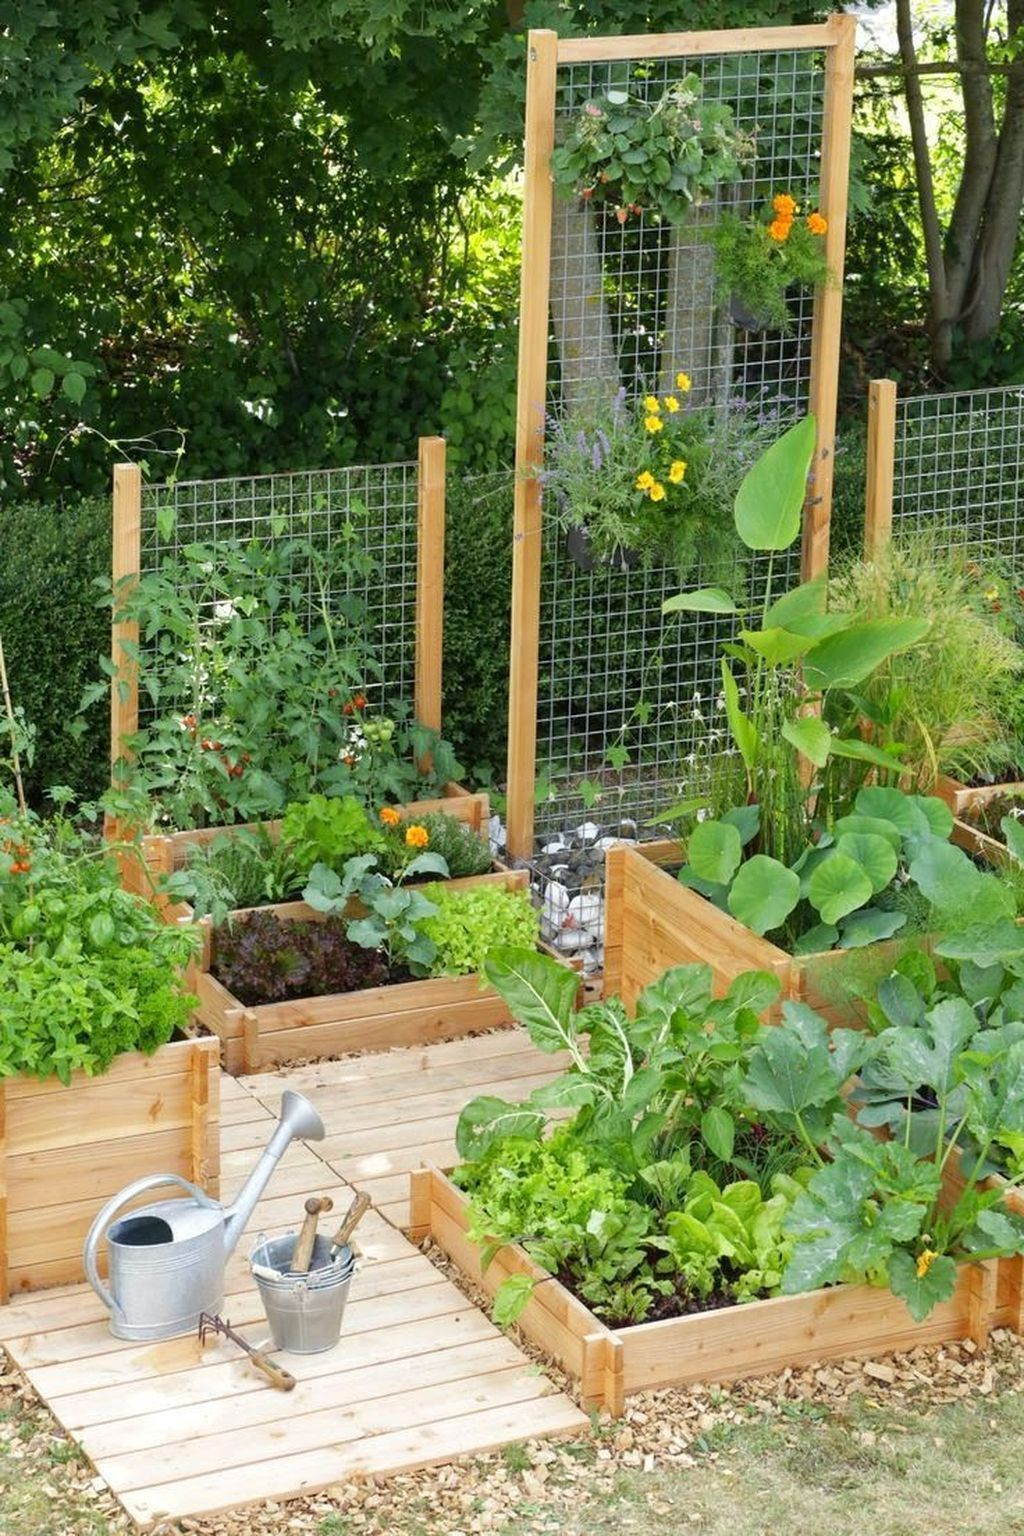 New Small Yard Ideas On A Budget Vegetable Garden in 9 | Small ...